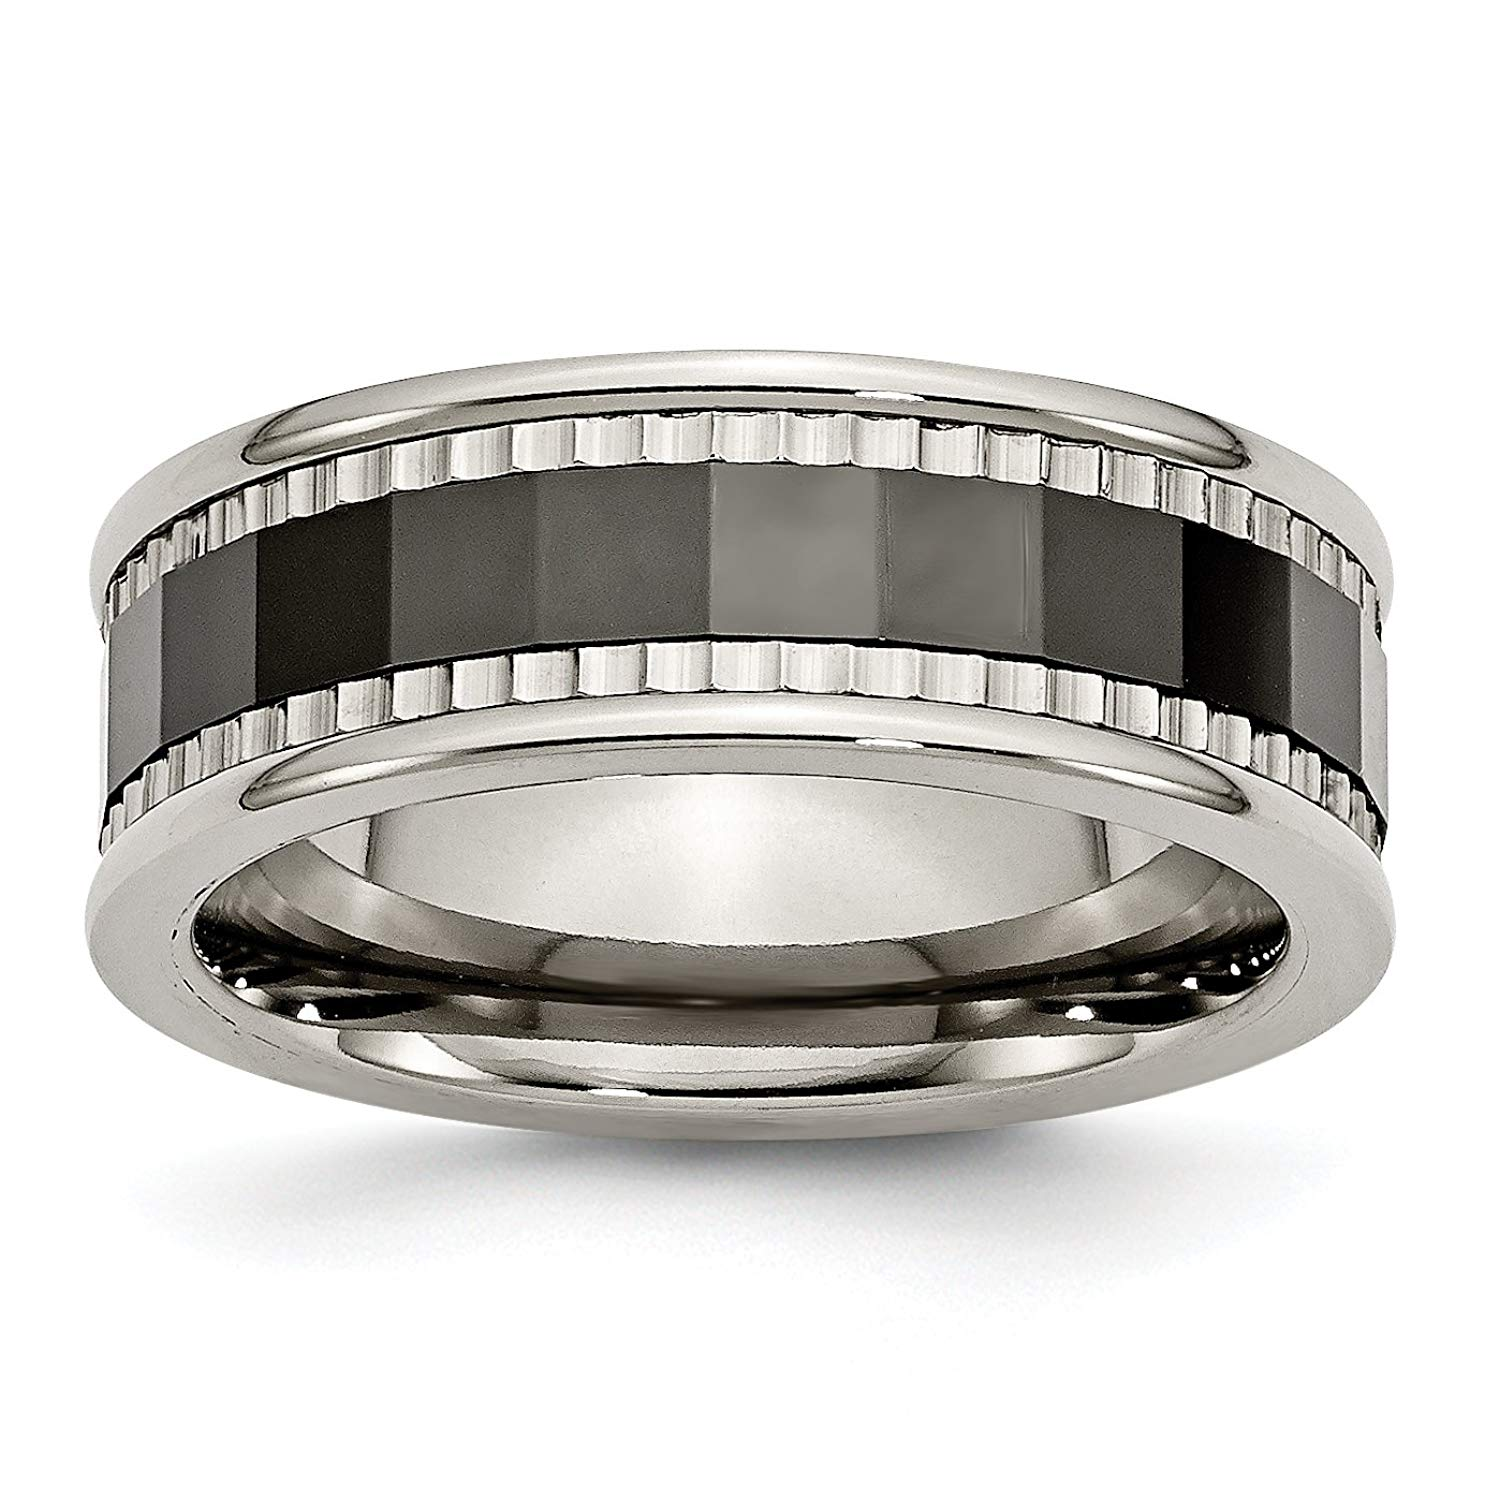 Titanium w/Sawtooth Accent/Polished Black Ceramic Center 8mm Band TB379-9<BR>Polished | Engravable | Titanium | Faceted | Ceramic